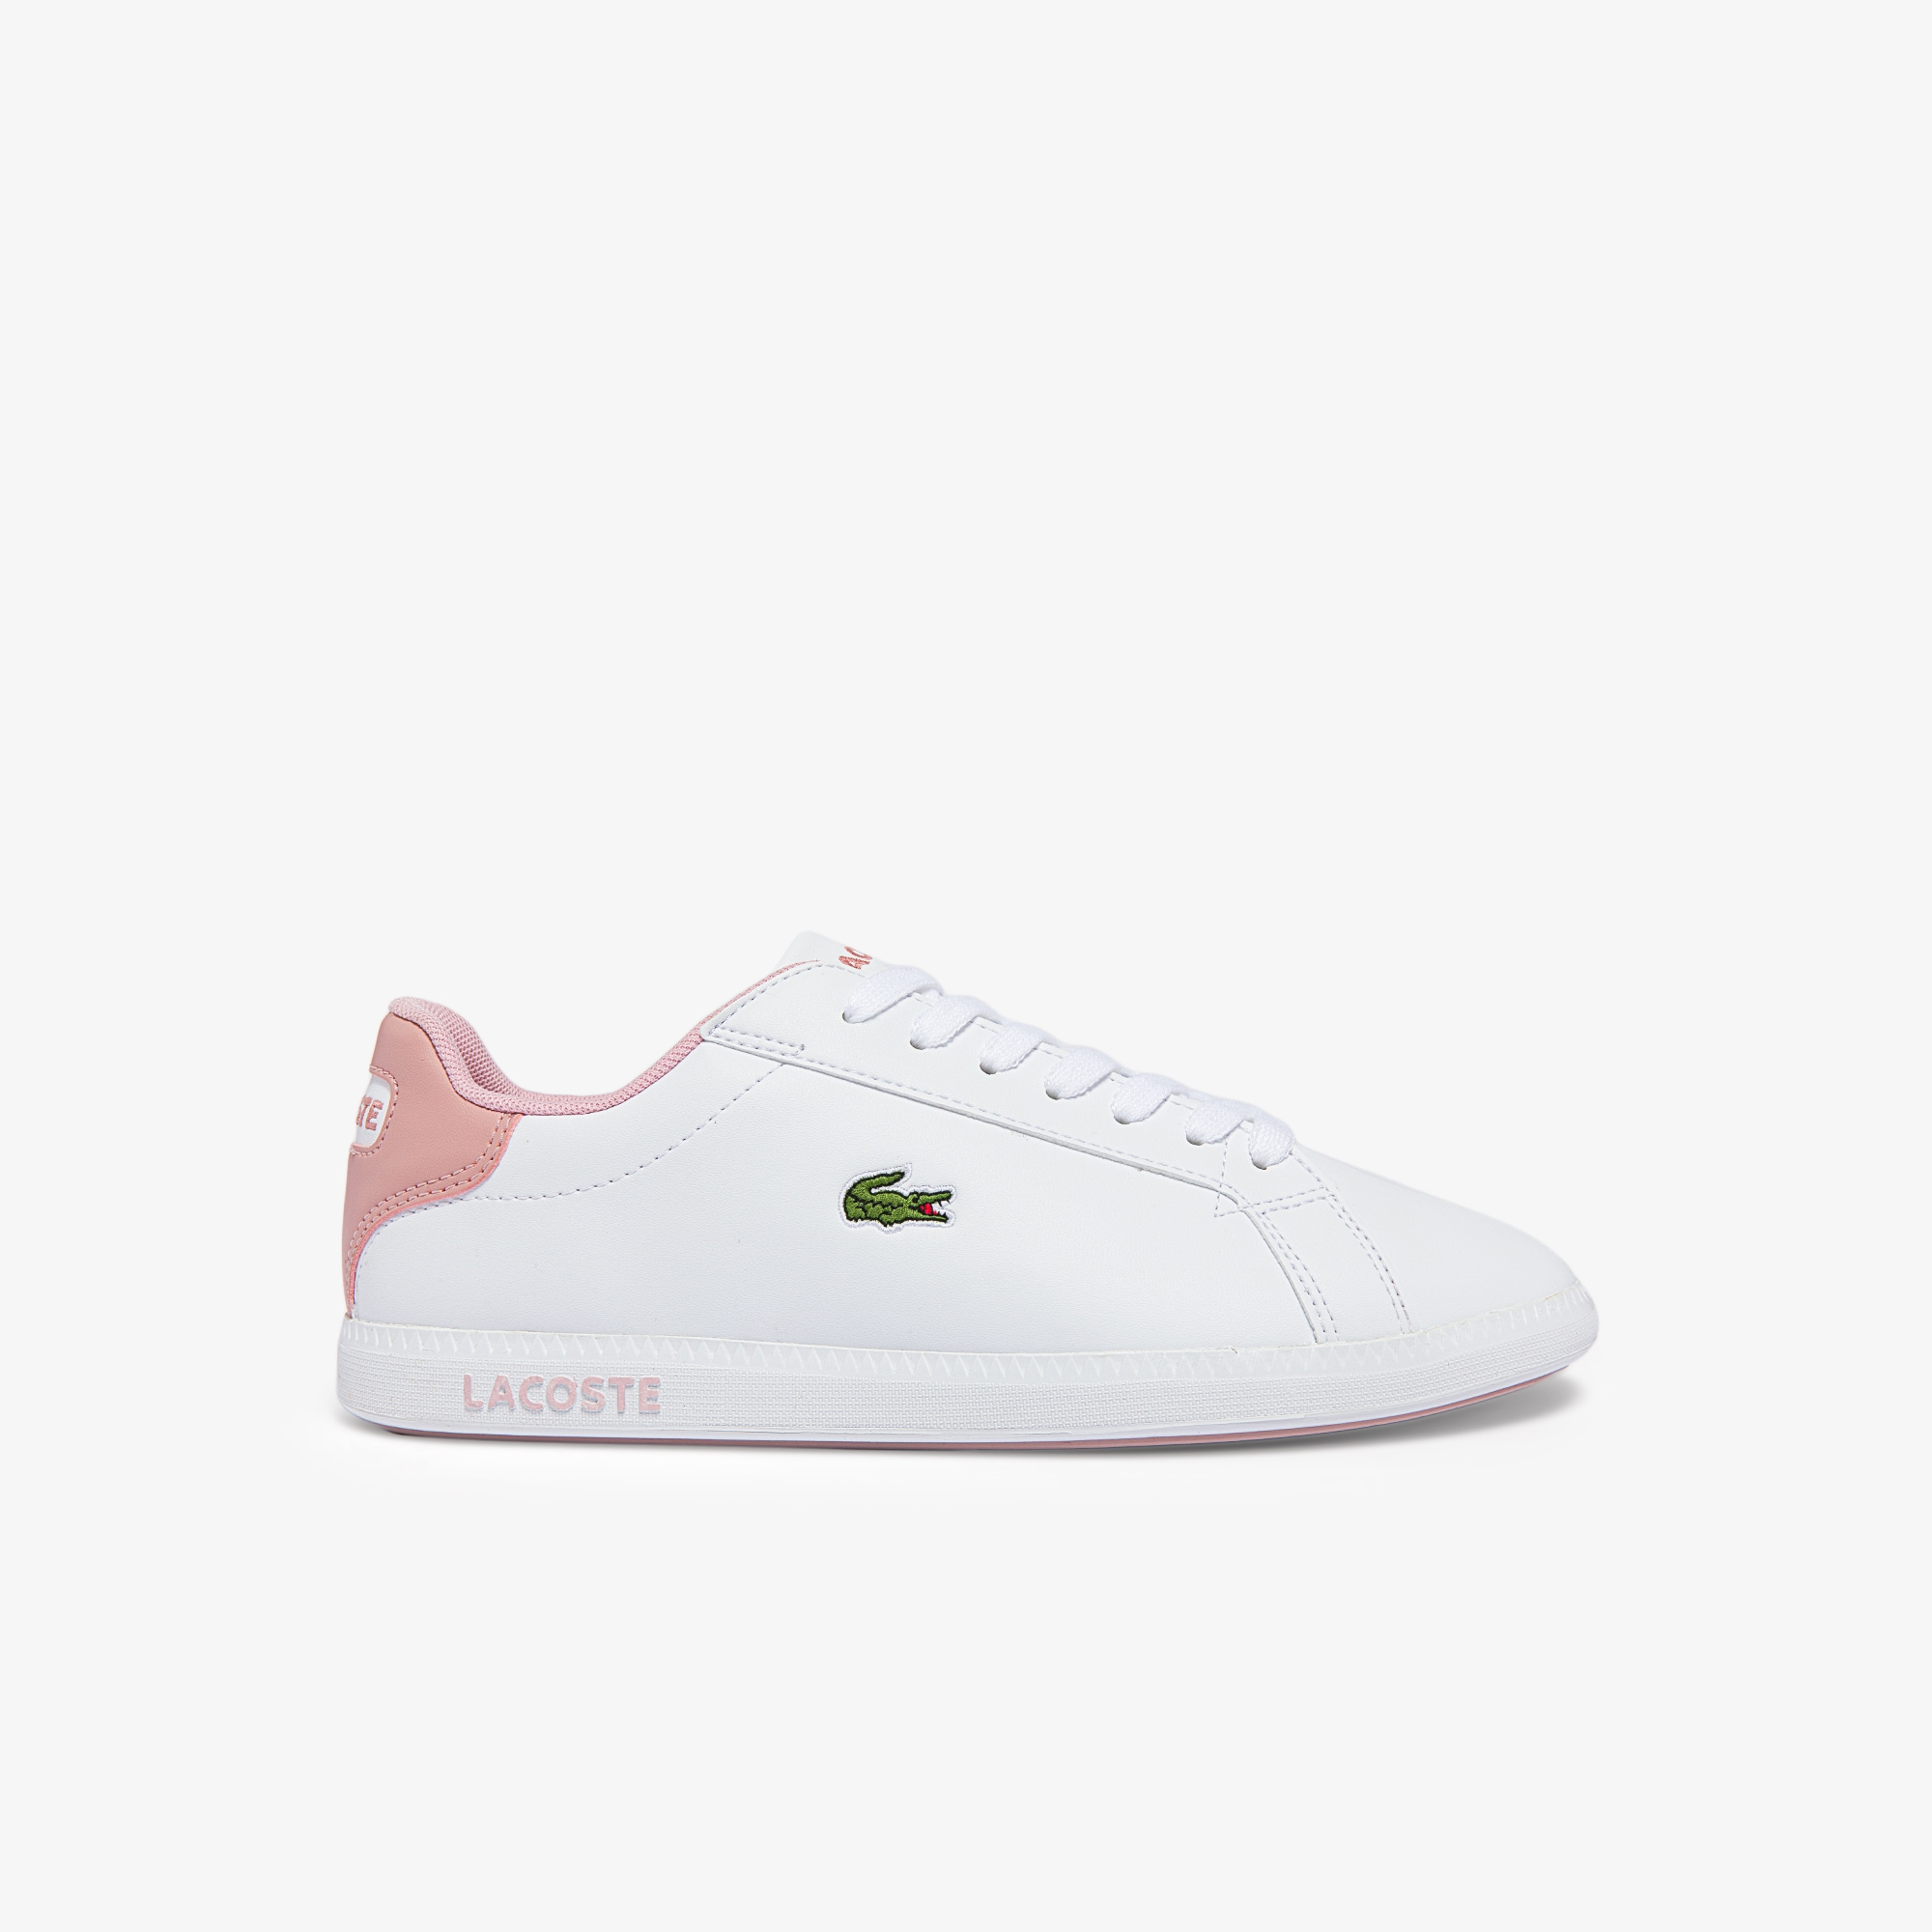 Lacoste Sneakers Graduate junior synthétique Taille 37.5 Blanc/rose